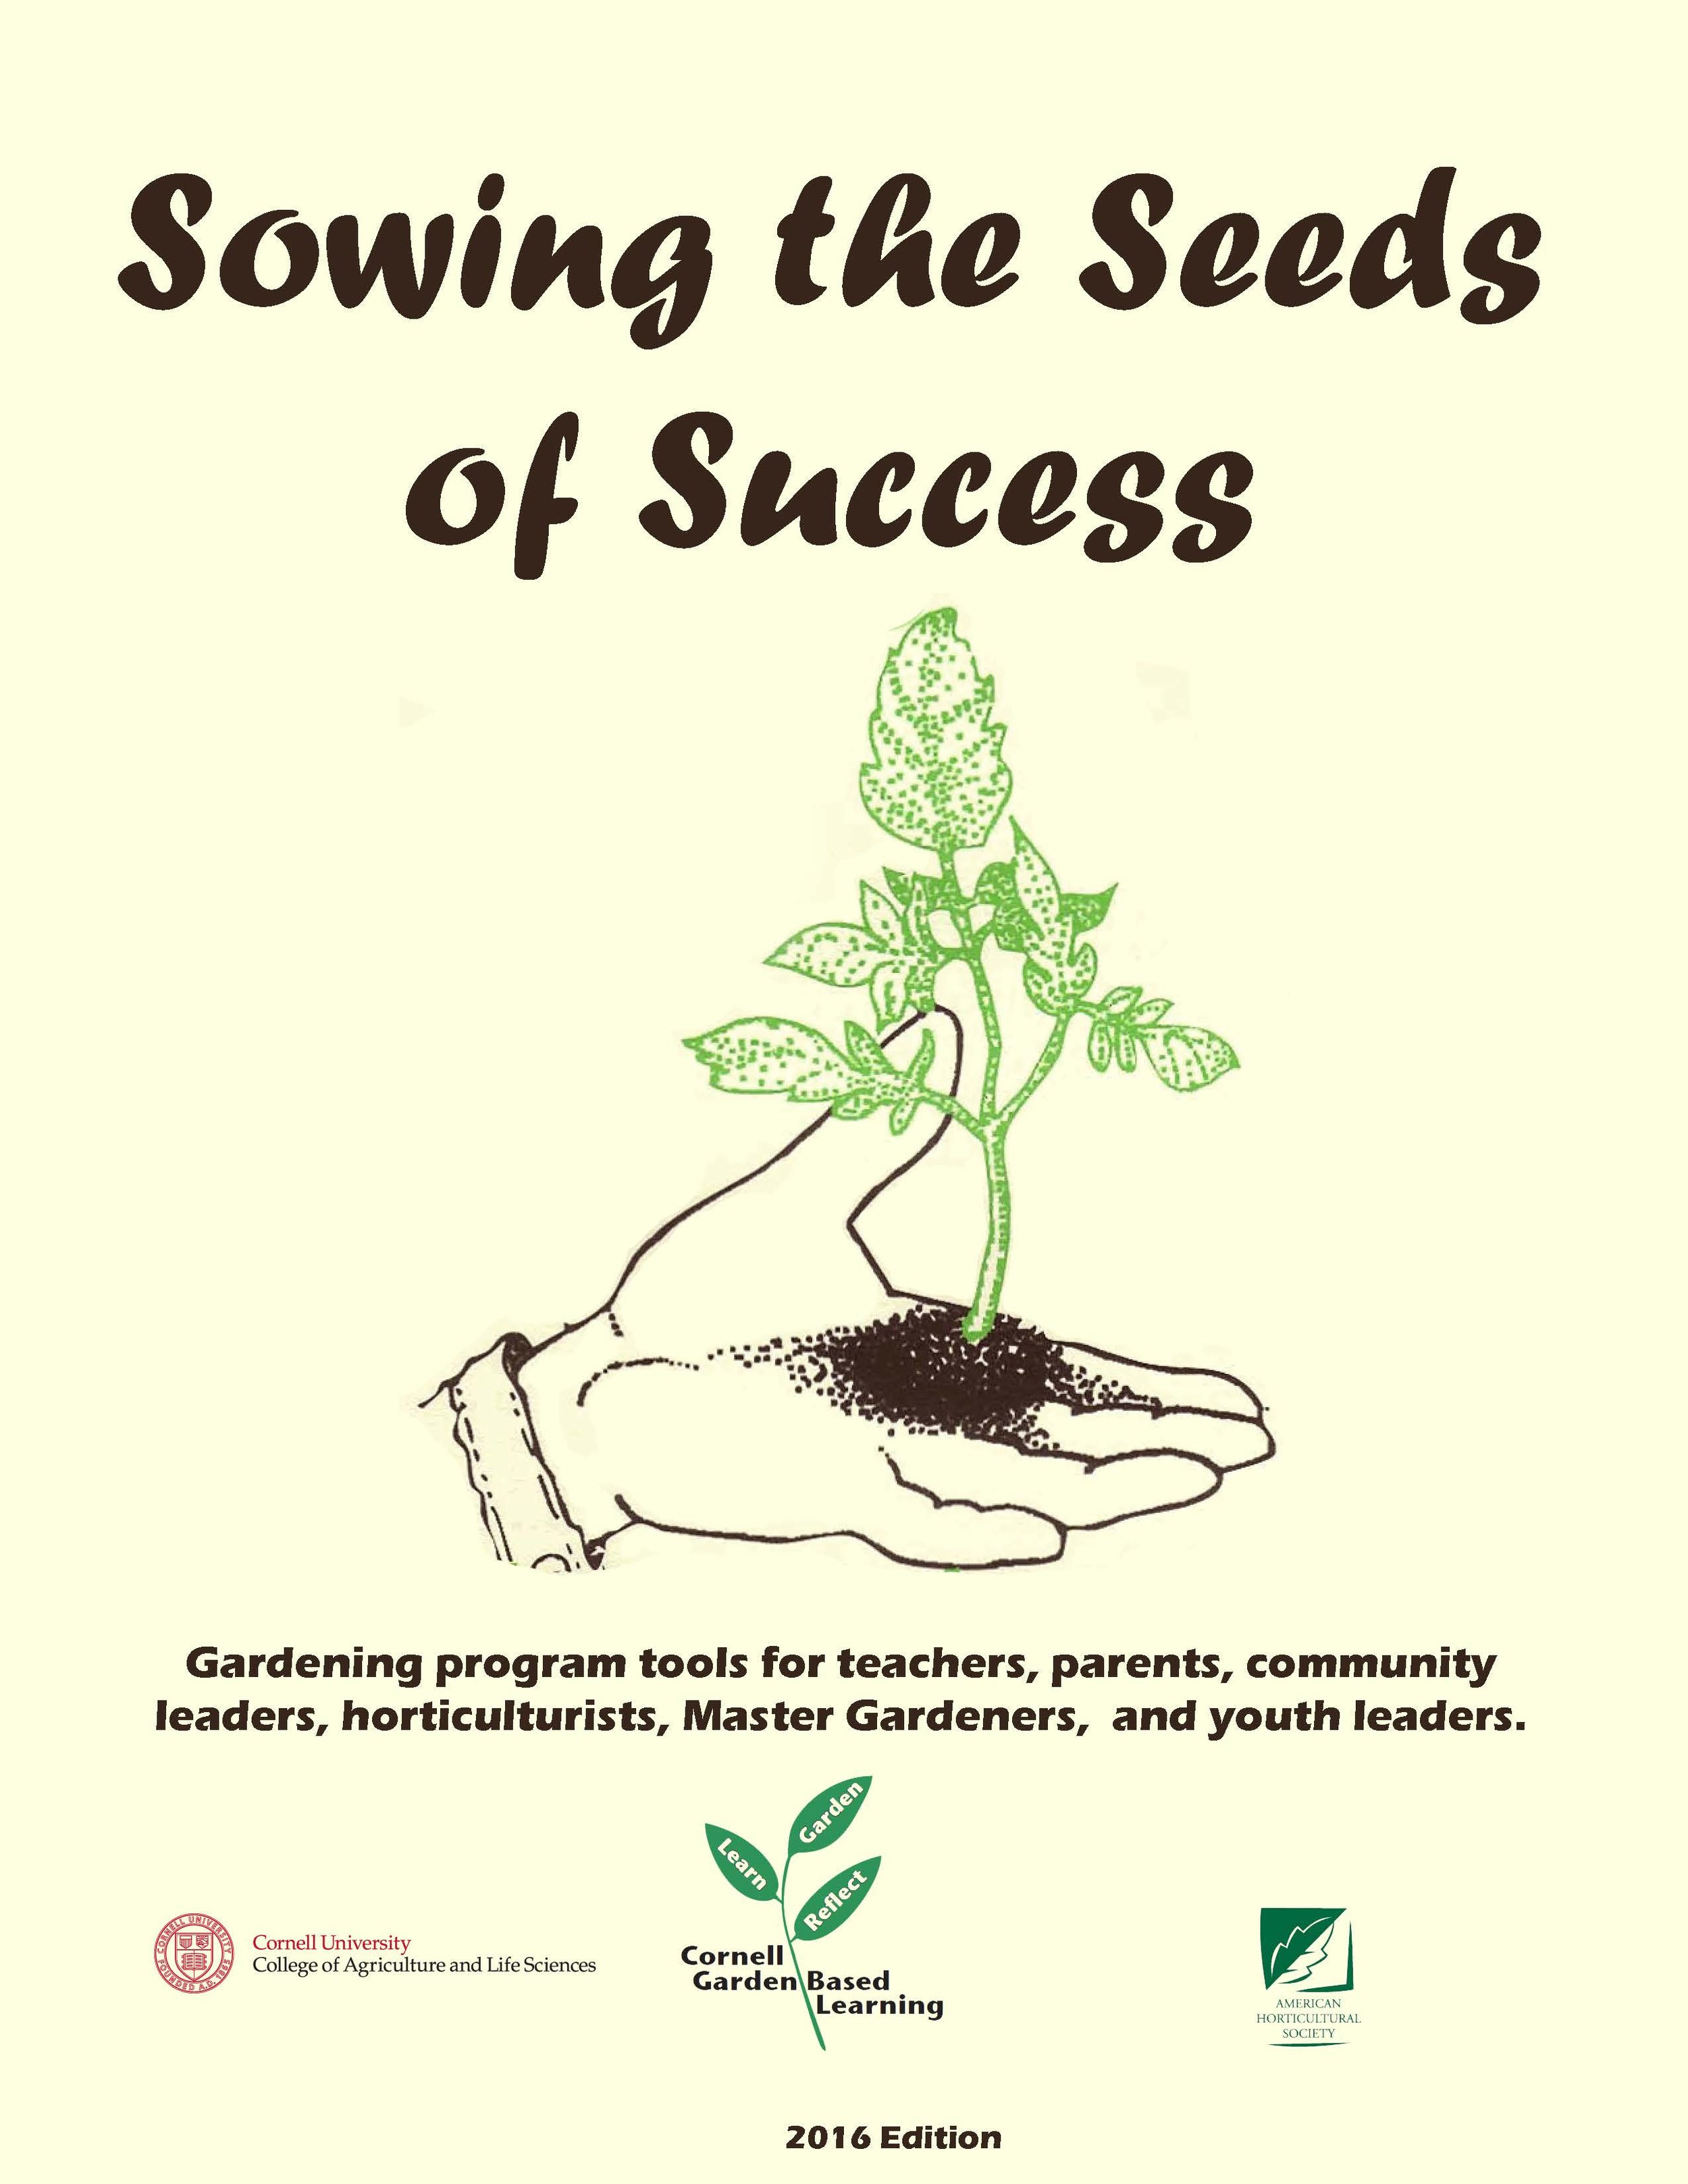 Sowing the Seeds of Success: a web-based program planning tool